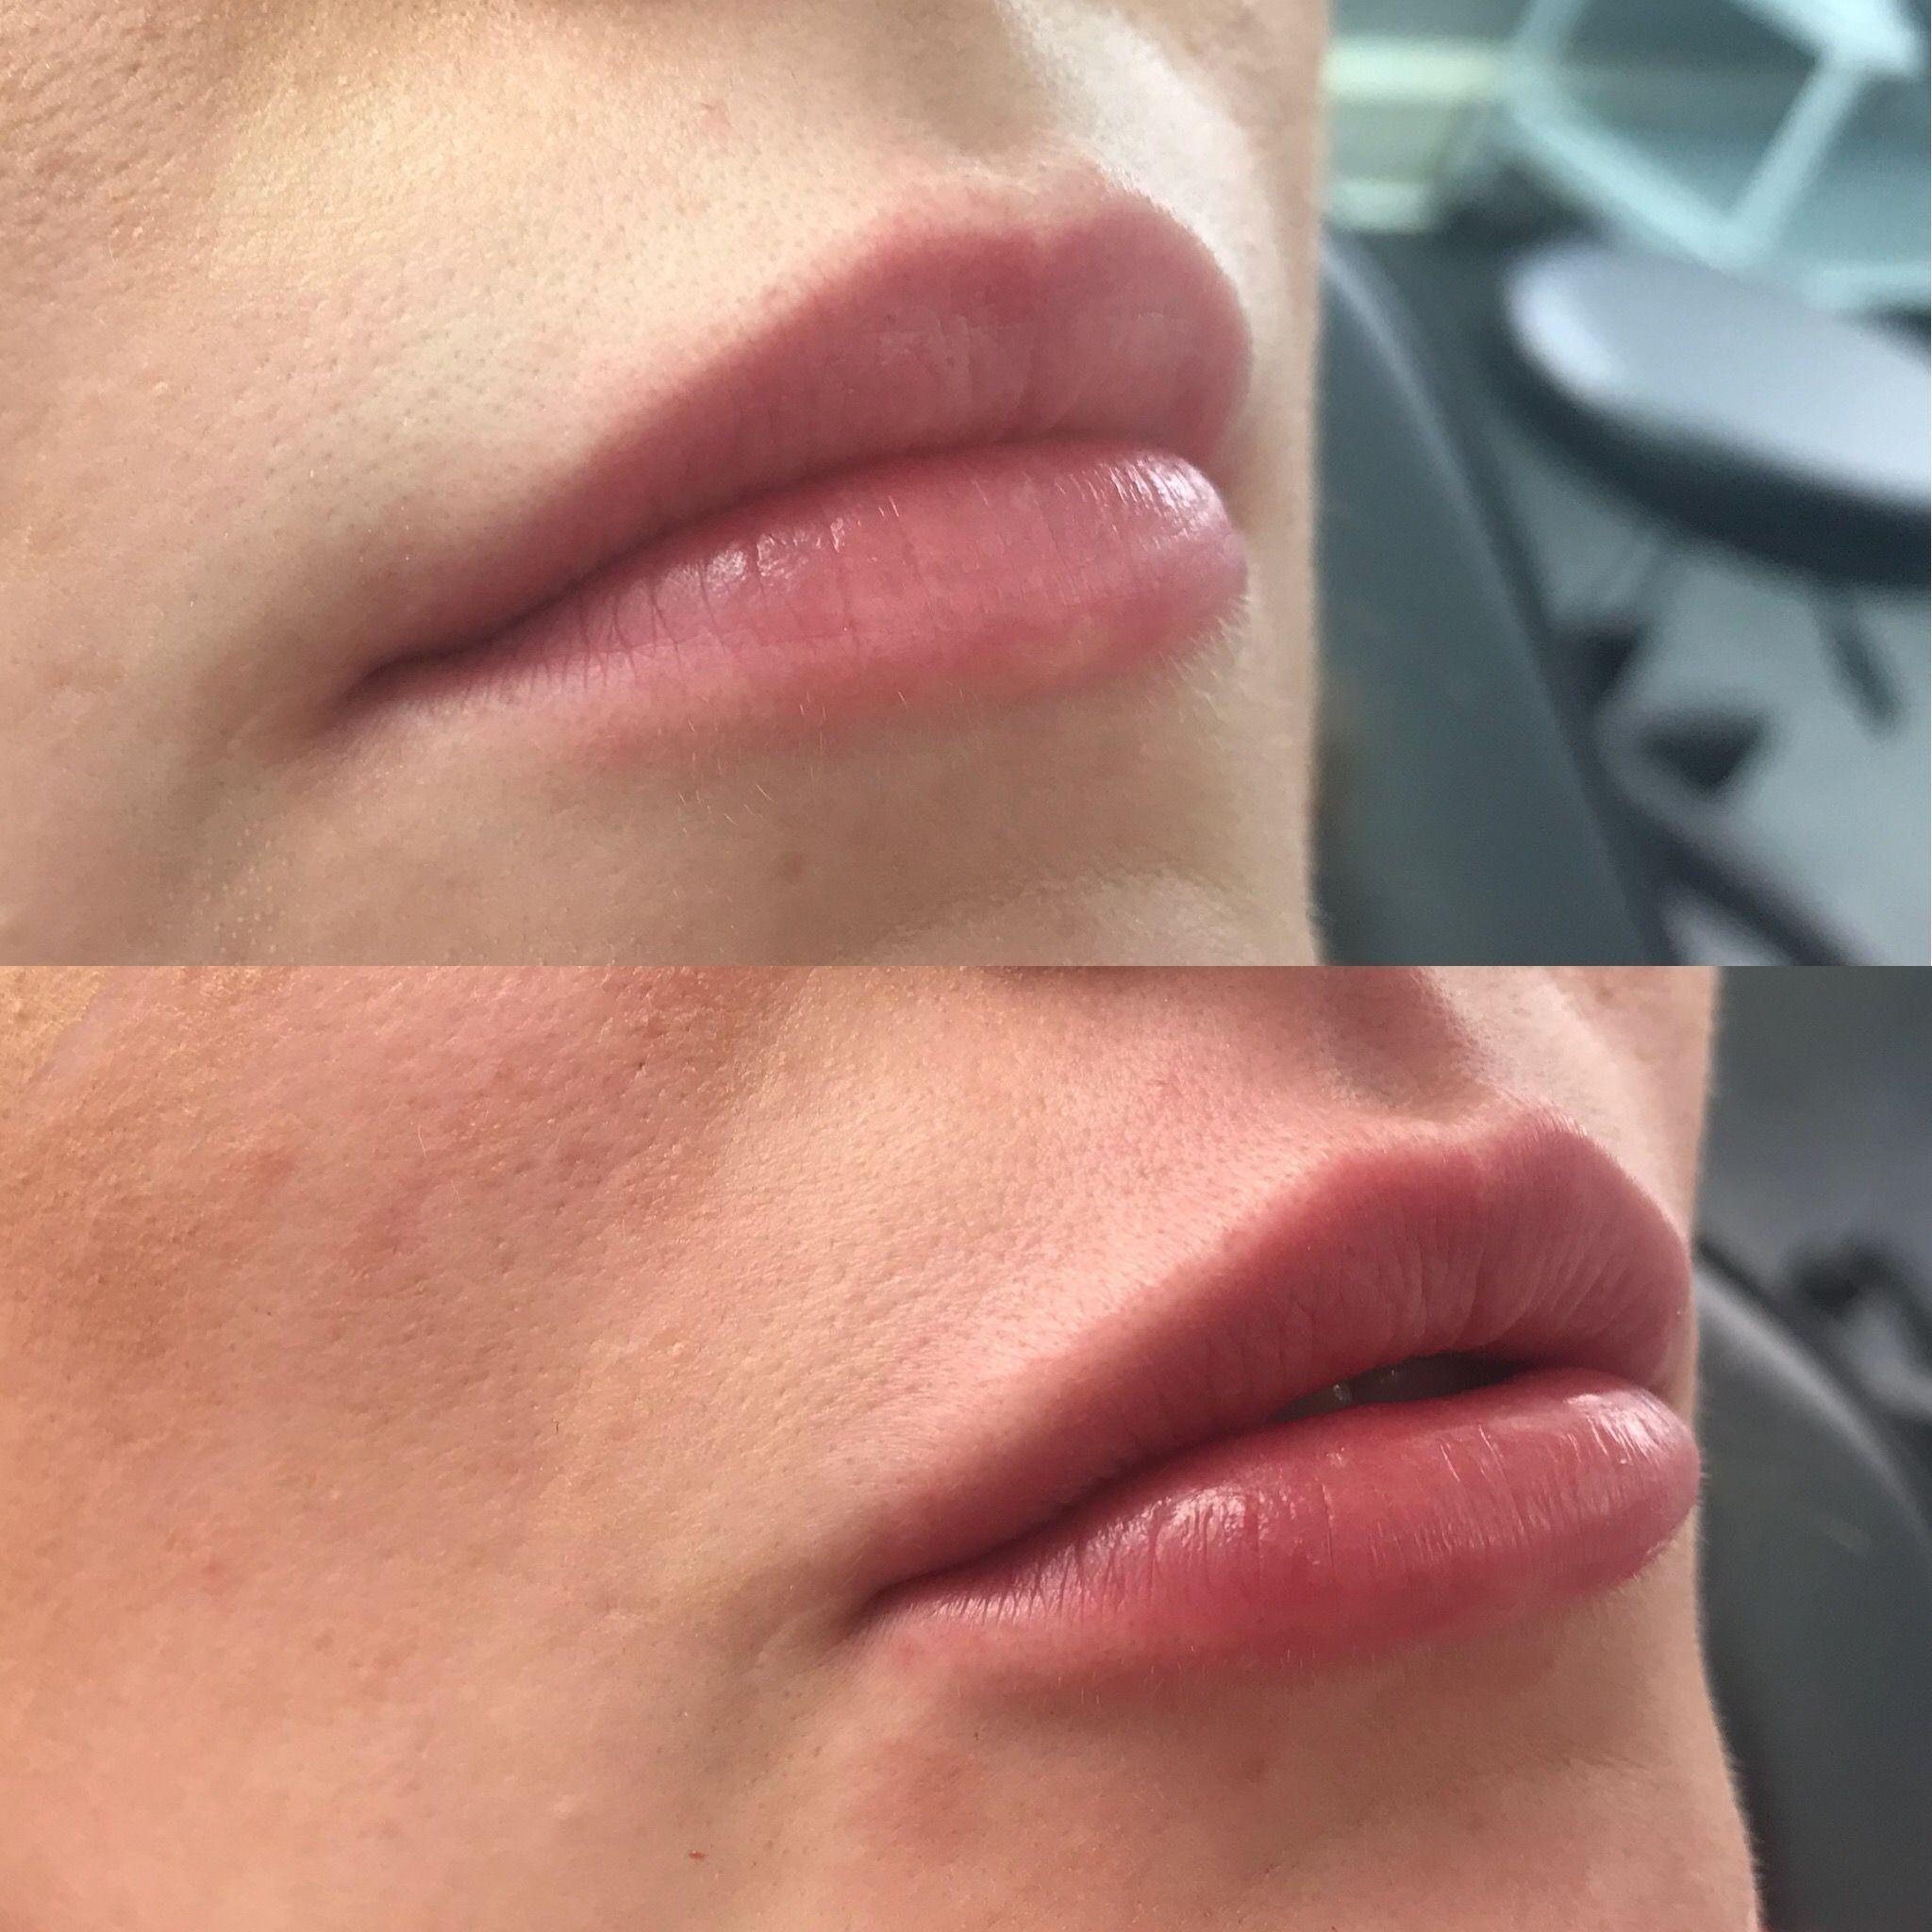 Swelling under nose piercing  Hollie Houston Lip fillers Permanent Make Up Lips created by Hollie